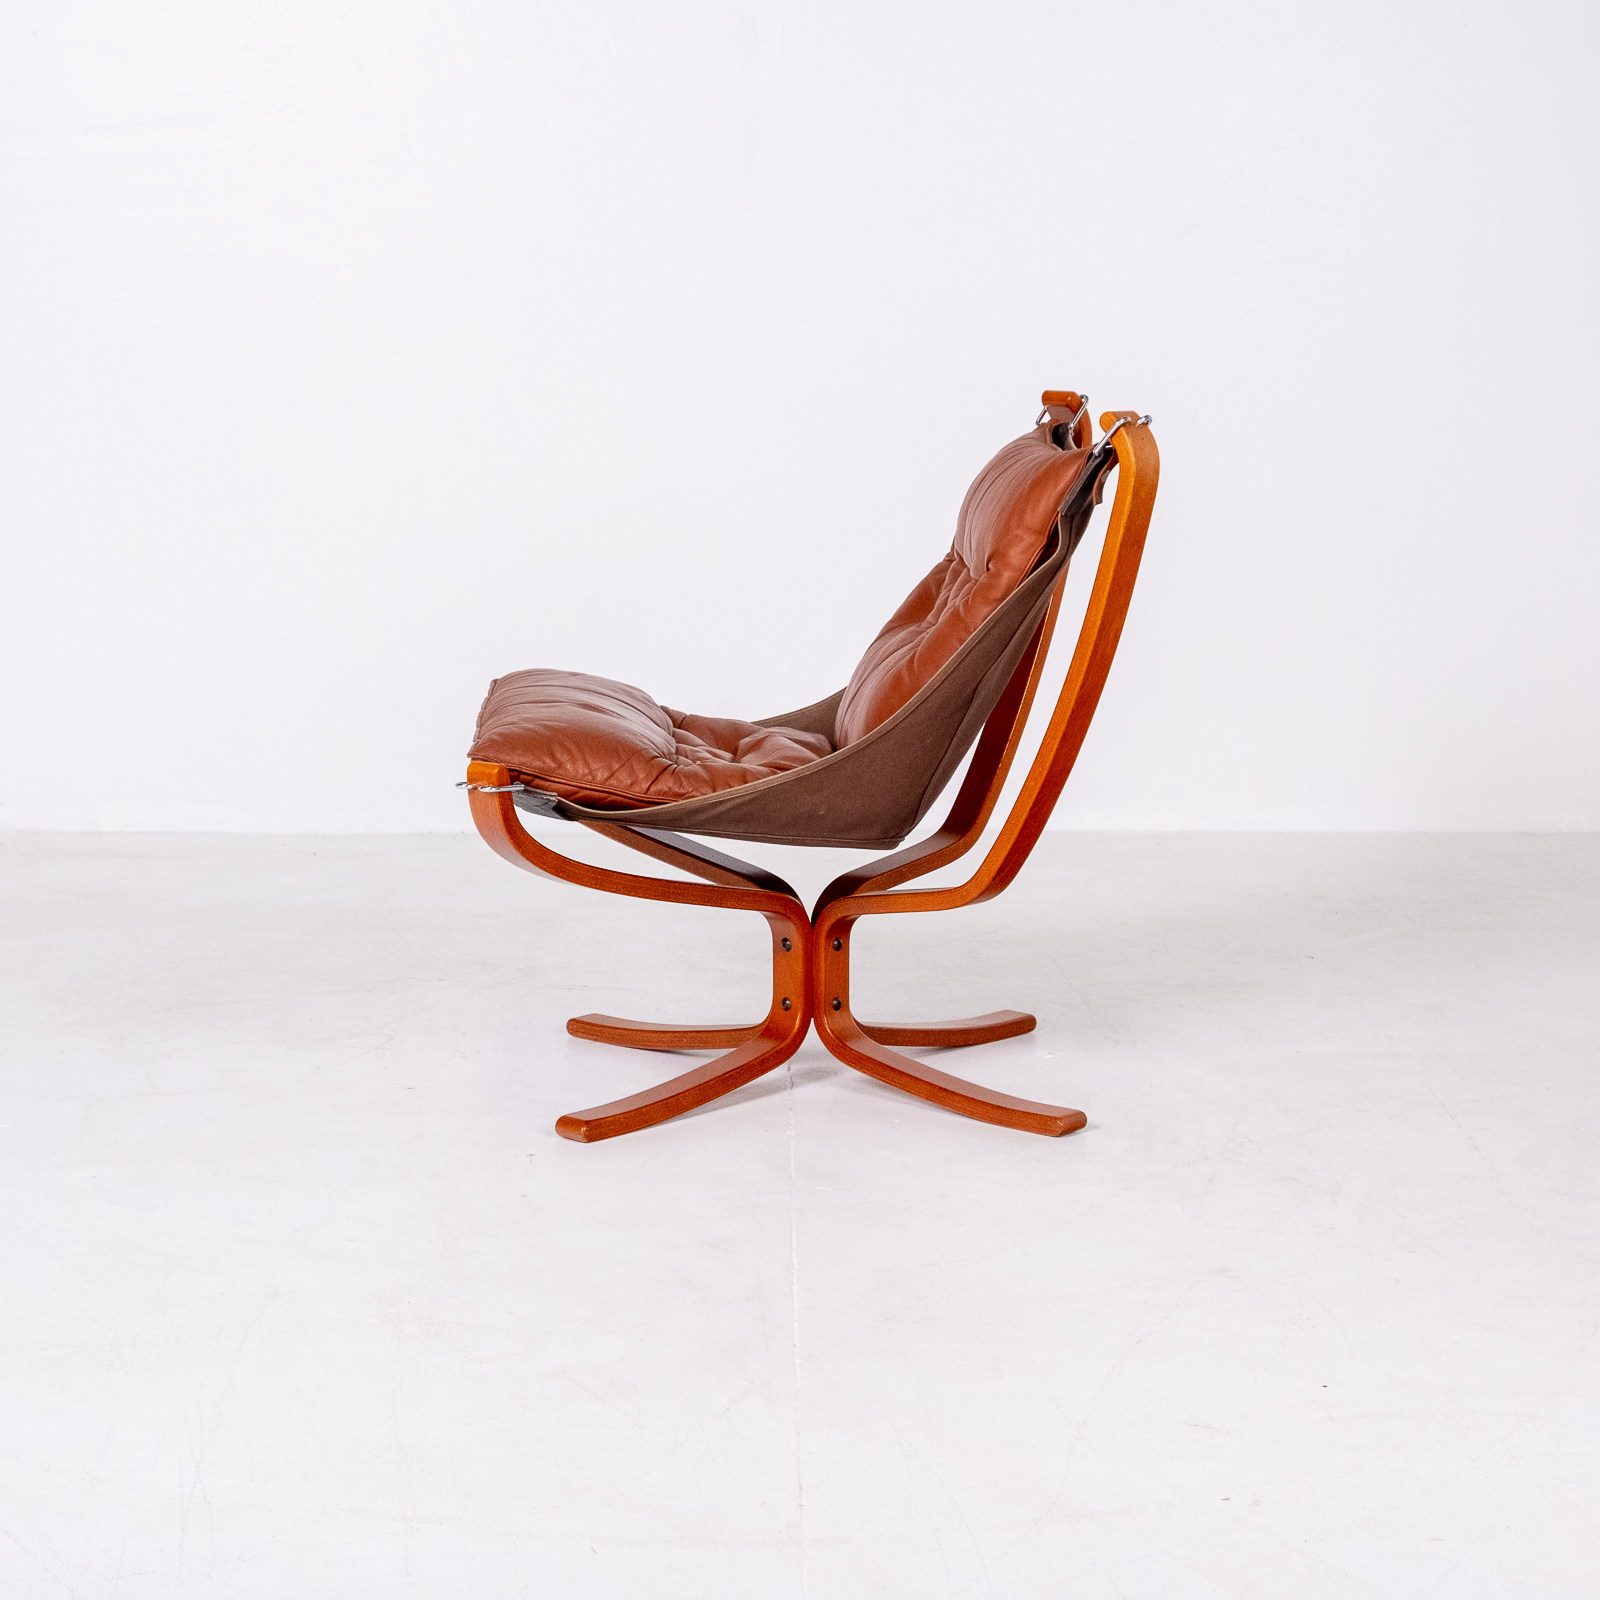 Low Back Falcon Armchair In Tan Leather By Sigurd Ressell For Vatne Mobler, 1971, Norway 04